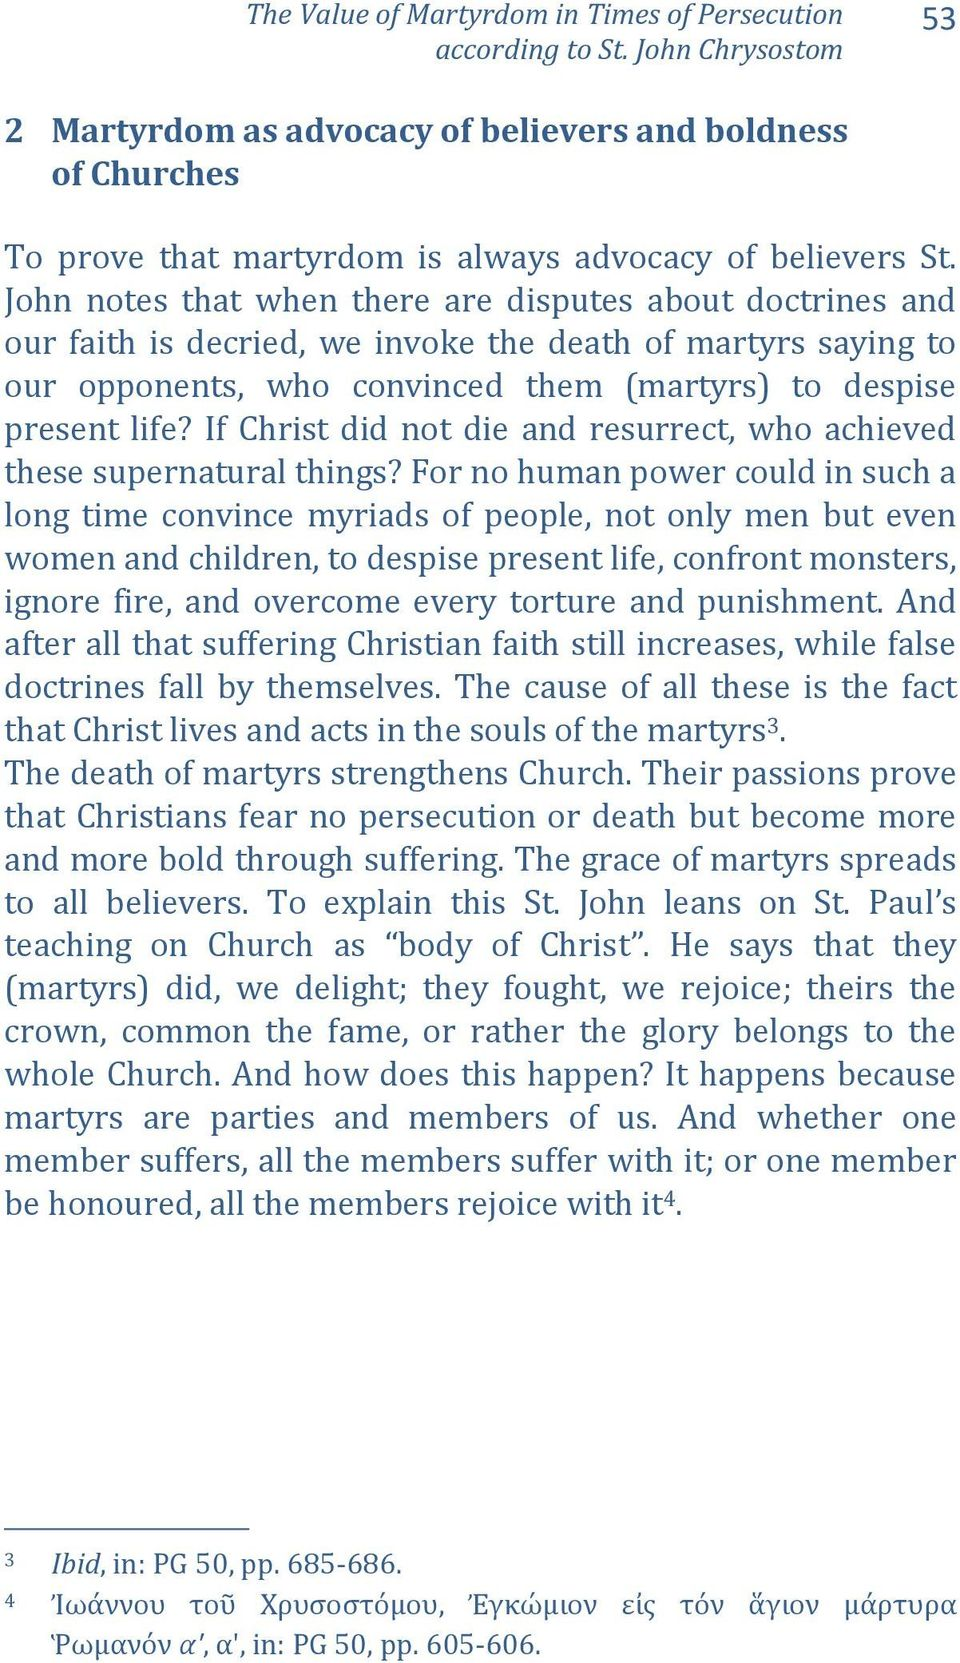 John notes that when there are disputes about doctrines and our faith is decried, we invoke the death of martyrs saying to our opponents, who convinced them (martyrs) to despise present life?